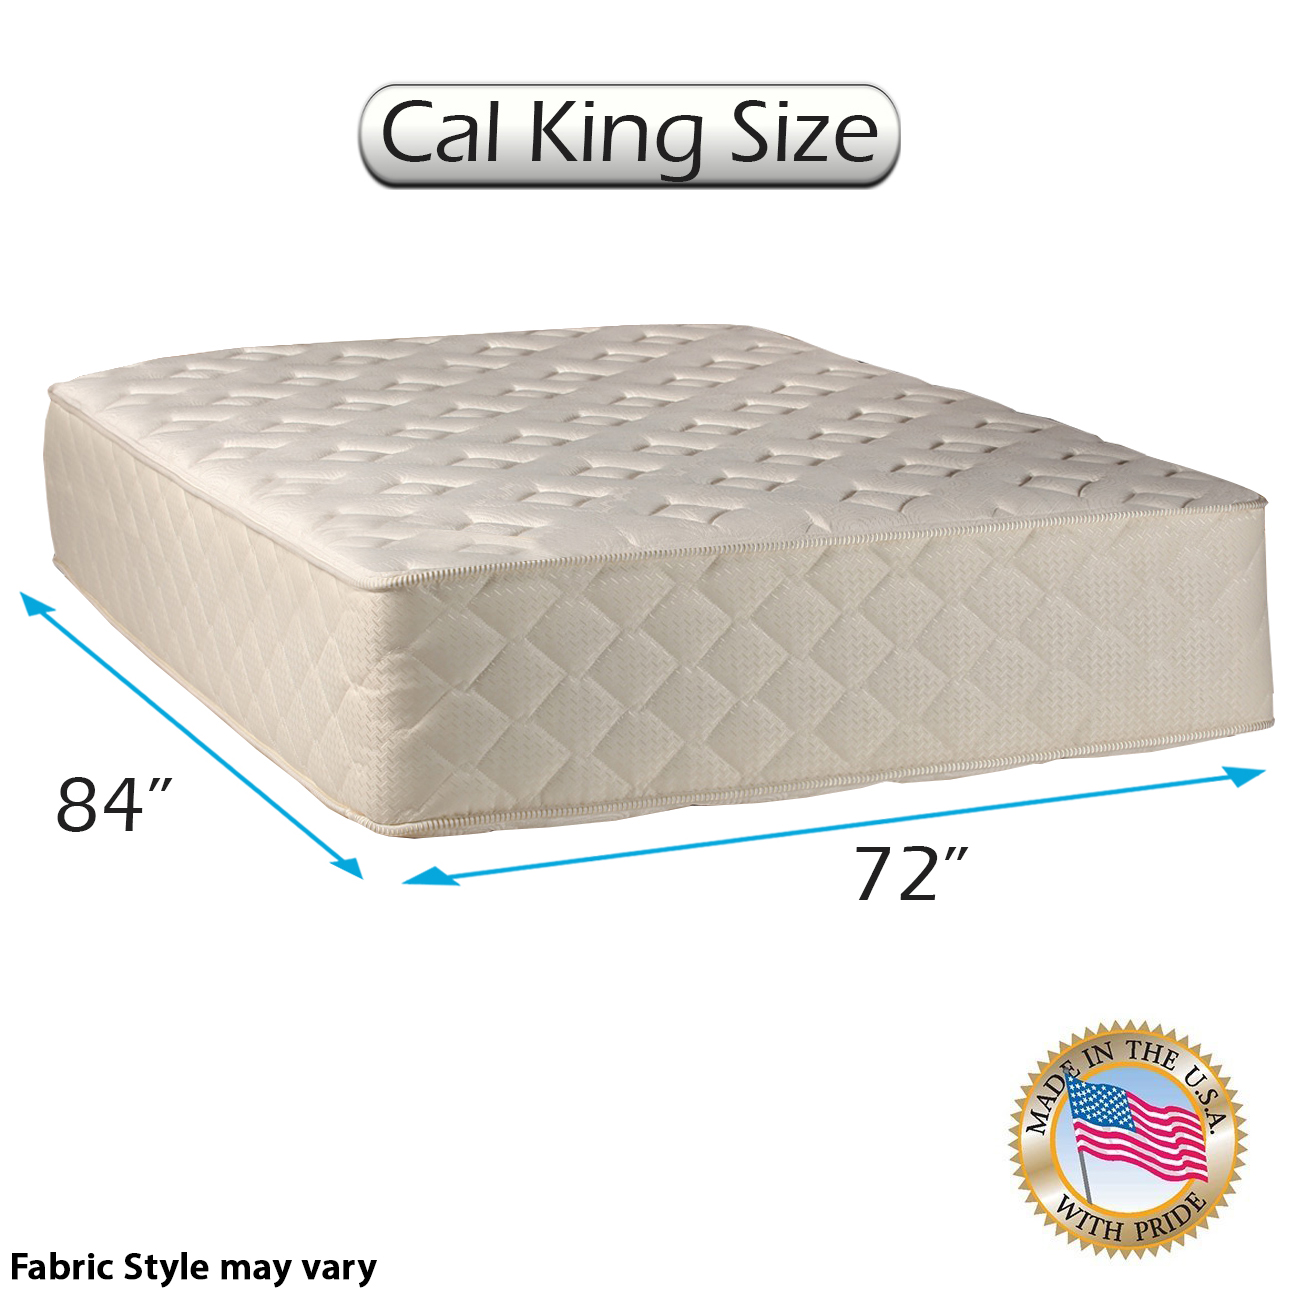 "Highlight Luxury Firm California King Size (72""x84""x14"") Mattress Only - Fully Assembled - Spinal Back Support, Innerspring Coils, Premium edge guards, Longlasting Comfort - By Dream Solutions USA"